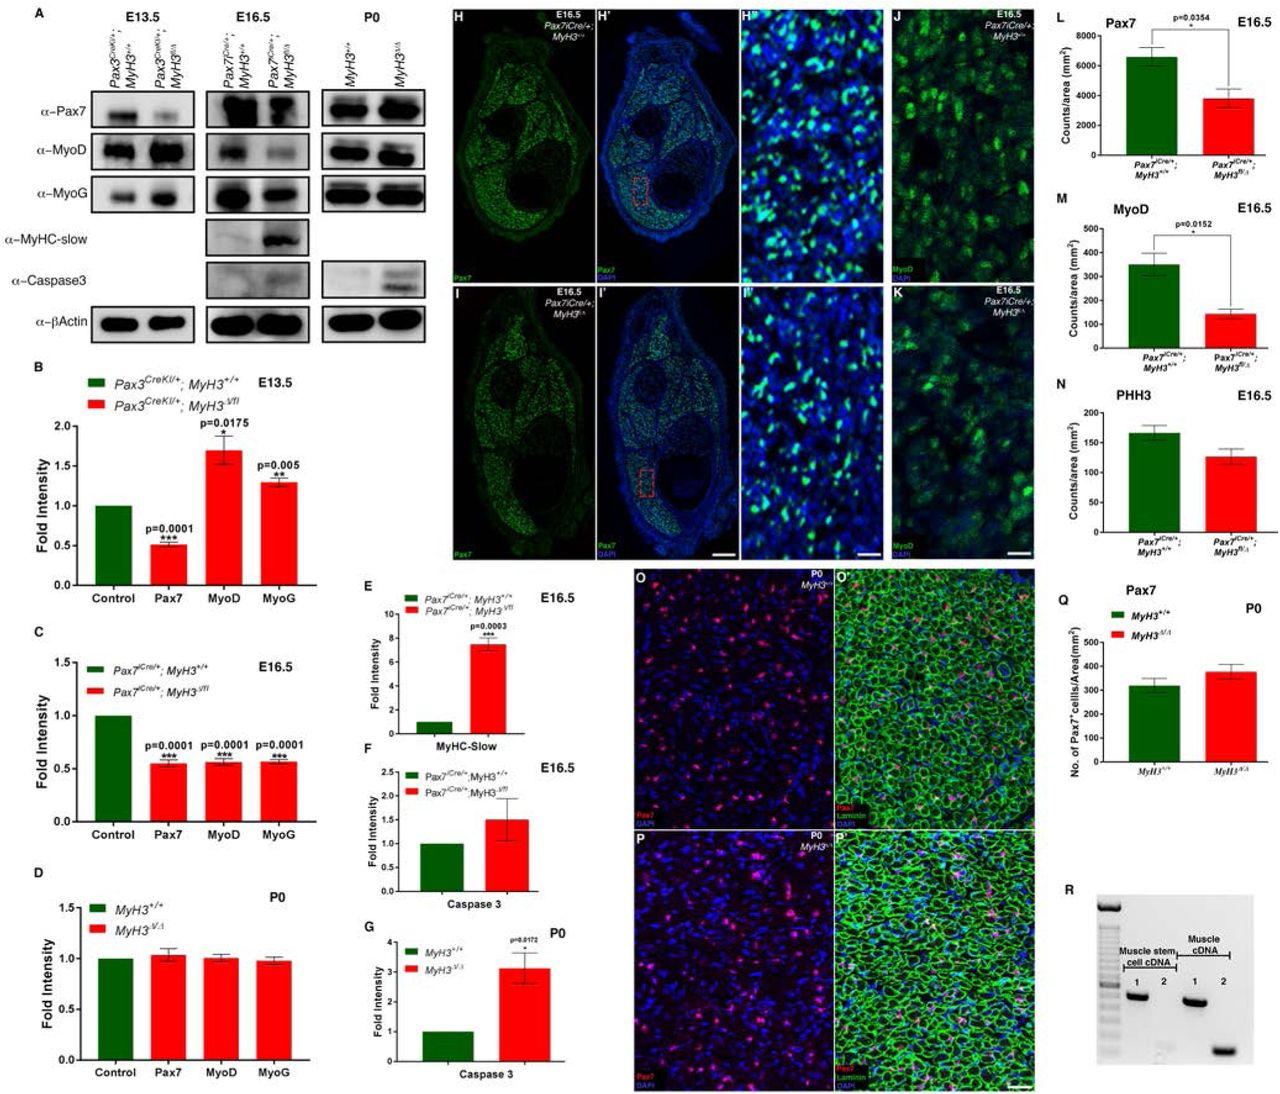 MyHC-embryonic regulates myogenic progenitor and myoblast differentiation non-cell autonomously during embryonic and fetal phases of myogenesis in vivo. At E13.5 during embryonic myogenesis, loss of MyHC-emb in the myogenic lineage in Pax3 CreKI/+ , MyH3Δ/fl3-7 leads to a significant reduction in Pax7 levels and a significant increase in MyoD and Myogenin levels by western blots (A), and quantified by densitometry (B) compared to control Pax3 CreKI/+ , MyH3+/+ animals. At E16.5 during fetal myogenesis, loss of MyHC-emb in the myogenic lineage in Pax7 iCre/+ , MyH3Δ/fl3-7 leads to a significant reduction in Pax7, MyoD and Myogenin levels by western blots (A), and quantified by densitometry (C), as compared to control Pax7 iCre/+ , MyH3+/+ animals. Pax7, MyoD and Myogenin protein levels are similar between MyH3 Δ/Δ and MyH3 +/+ animals at P0 by western blots (A), which is quantified by densitometry (D). The levels of MyHC-slow are increased about 7-fold at E16.5 during fetal myogenesis compared to controls in Pax7 iCre/+ , MyH3Δ/fl3-7 animals by western blot (A) and quantified by densitometry (E). Cell death measured by levels of cleaved Caspase3 protein was detected by western blots at E16.5 and P0 (A) and quantified by densitometry which showed that there was no significant difference in cell death between controls and Pax7 iCre/+ , MyH3Δ/fl3-7 animals at E16.5 (F), while cell death was significantly elevated by about 3-fold in the MyH3 Δ/Δ animals compared to MyH3 +/+ animals at P0 (G). At E16.5 during fetal myogenesis, loss of MyHC-emb in the myogenic lineage in Pax7 iCre/+ , MyH3Δ/fl3-7 leads to a significant reduction in the number of Pax7+ cells in the hind limb muscles compared to control by labeling Pax7 (Green), and DAPI (Blue) by immunofluorescence (H, H', I, I'), which is quantified normalized to total area (L). H′' and I′' are magnified regions from H' and I' respectively. MyoD+ myoblasts at E16.5 during fetal myogenesis in control and Pax7 iCre/+ , MyH3Δ